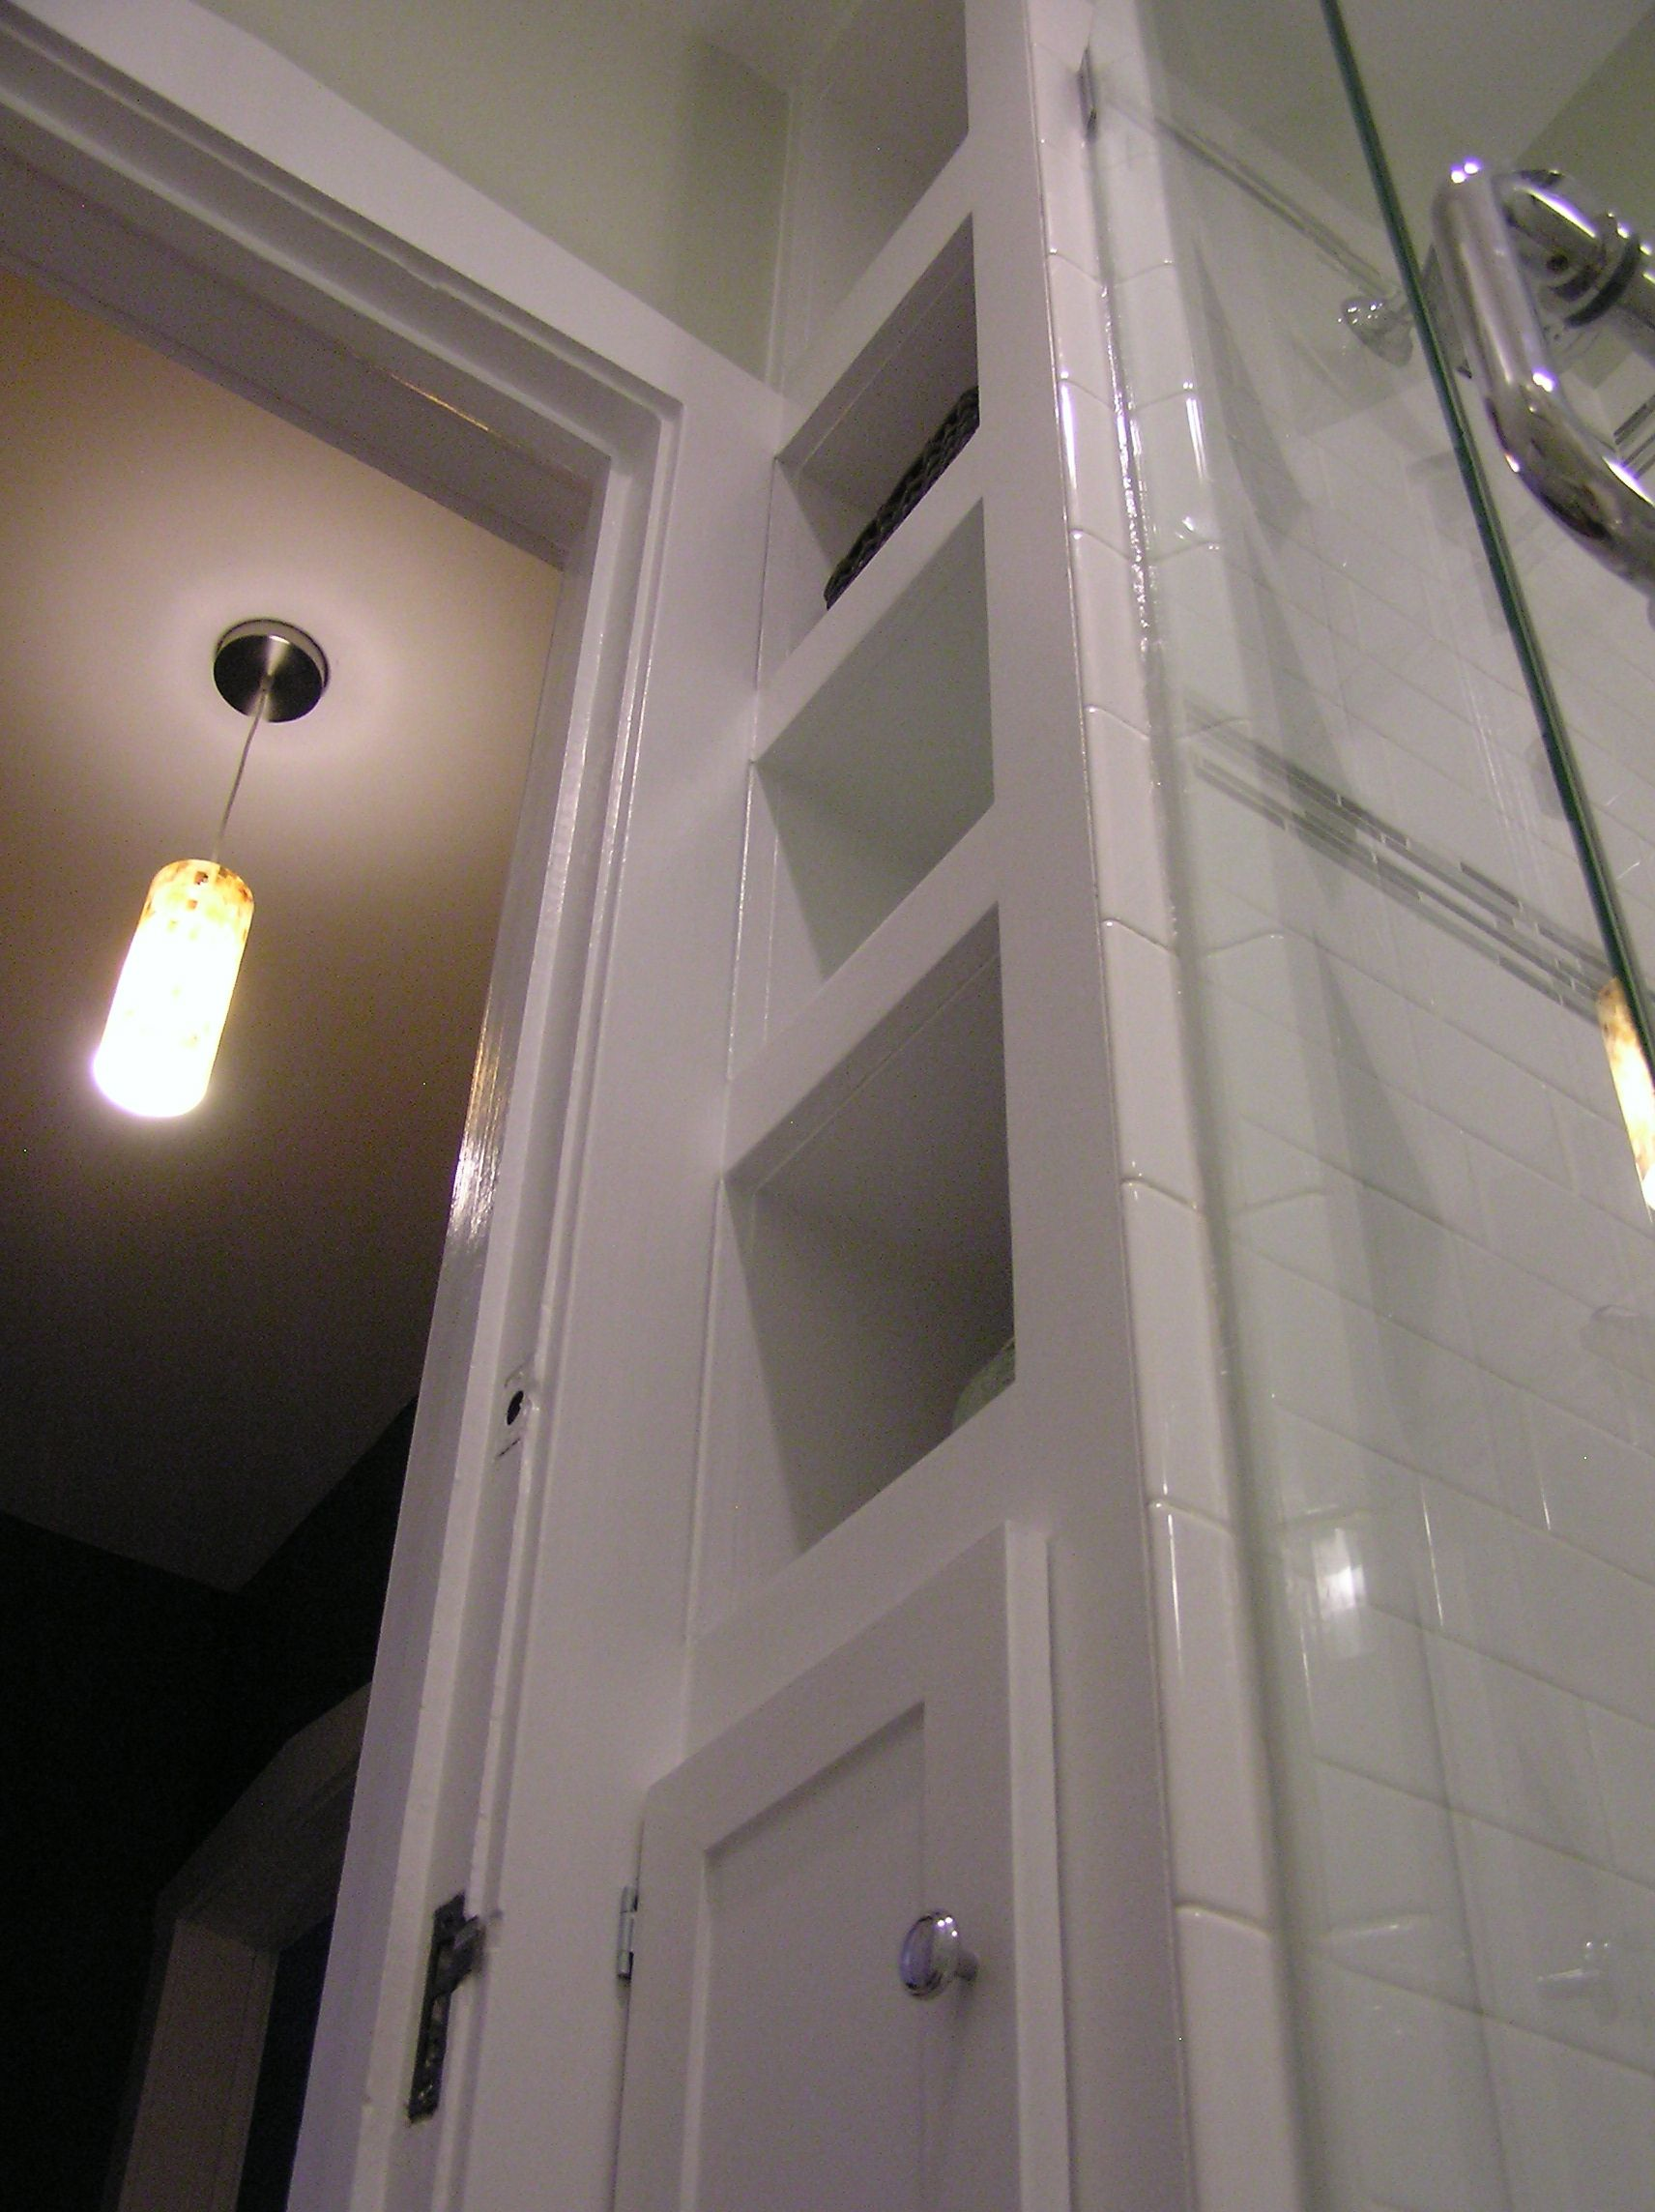 Built in bathroom wall storage - Narrow Built In Shelves Are Only 12 Wide But Pack A Ton Of Storage